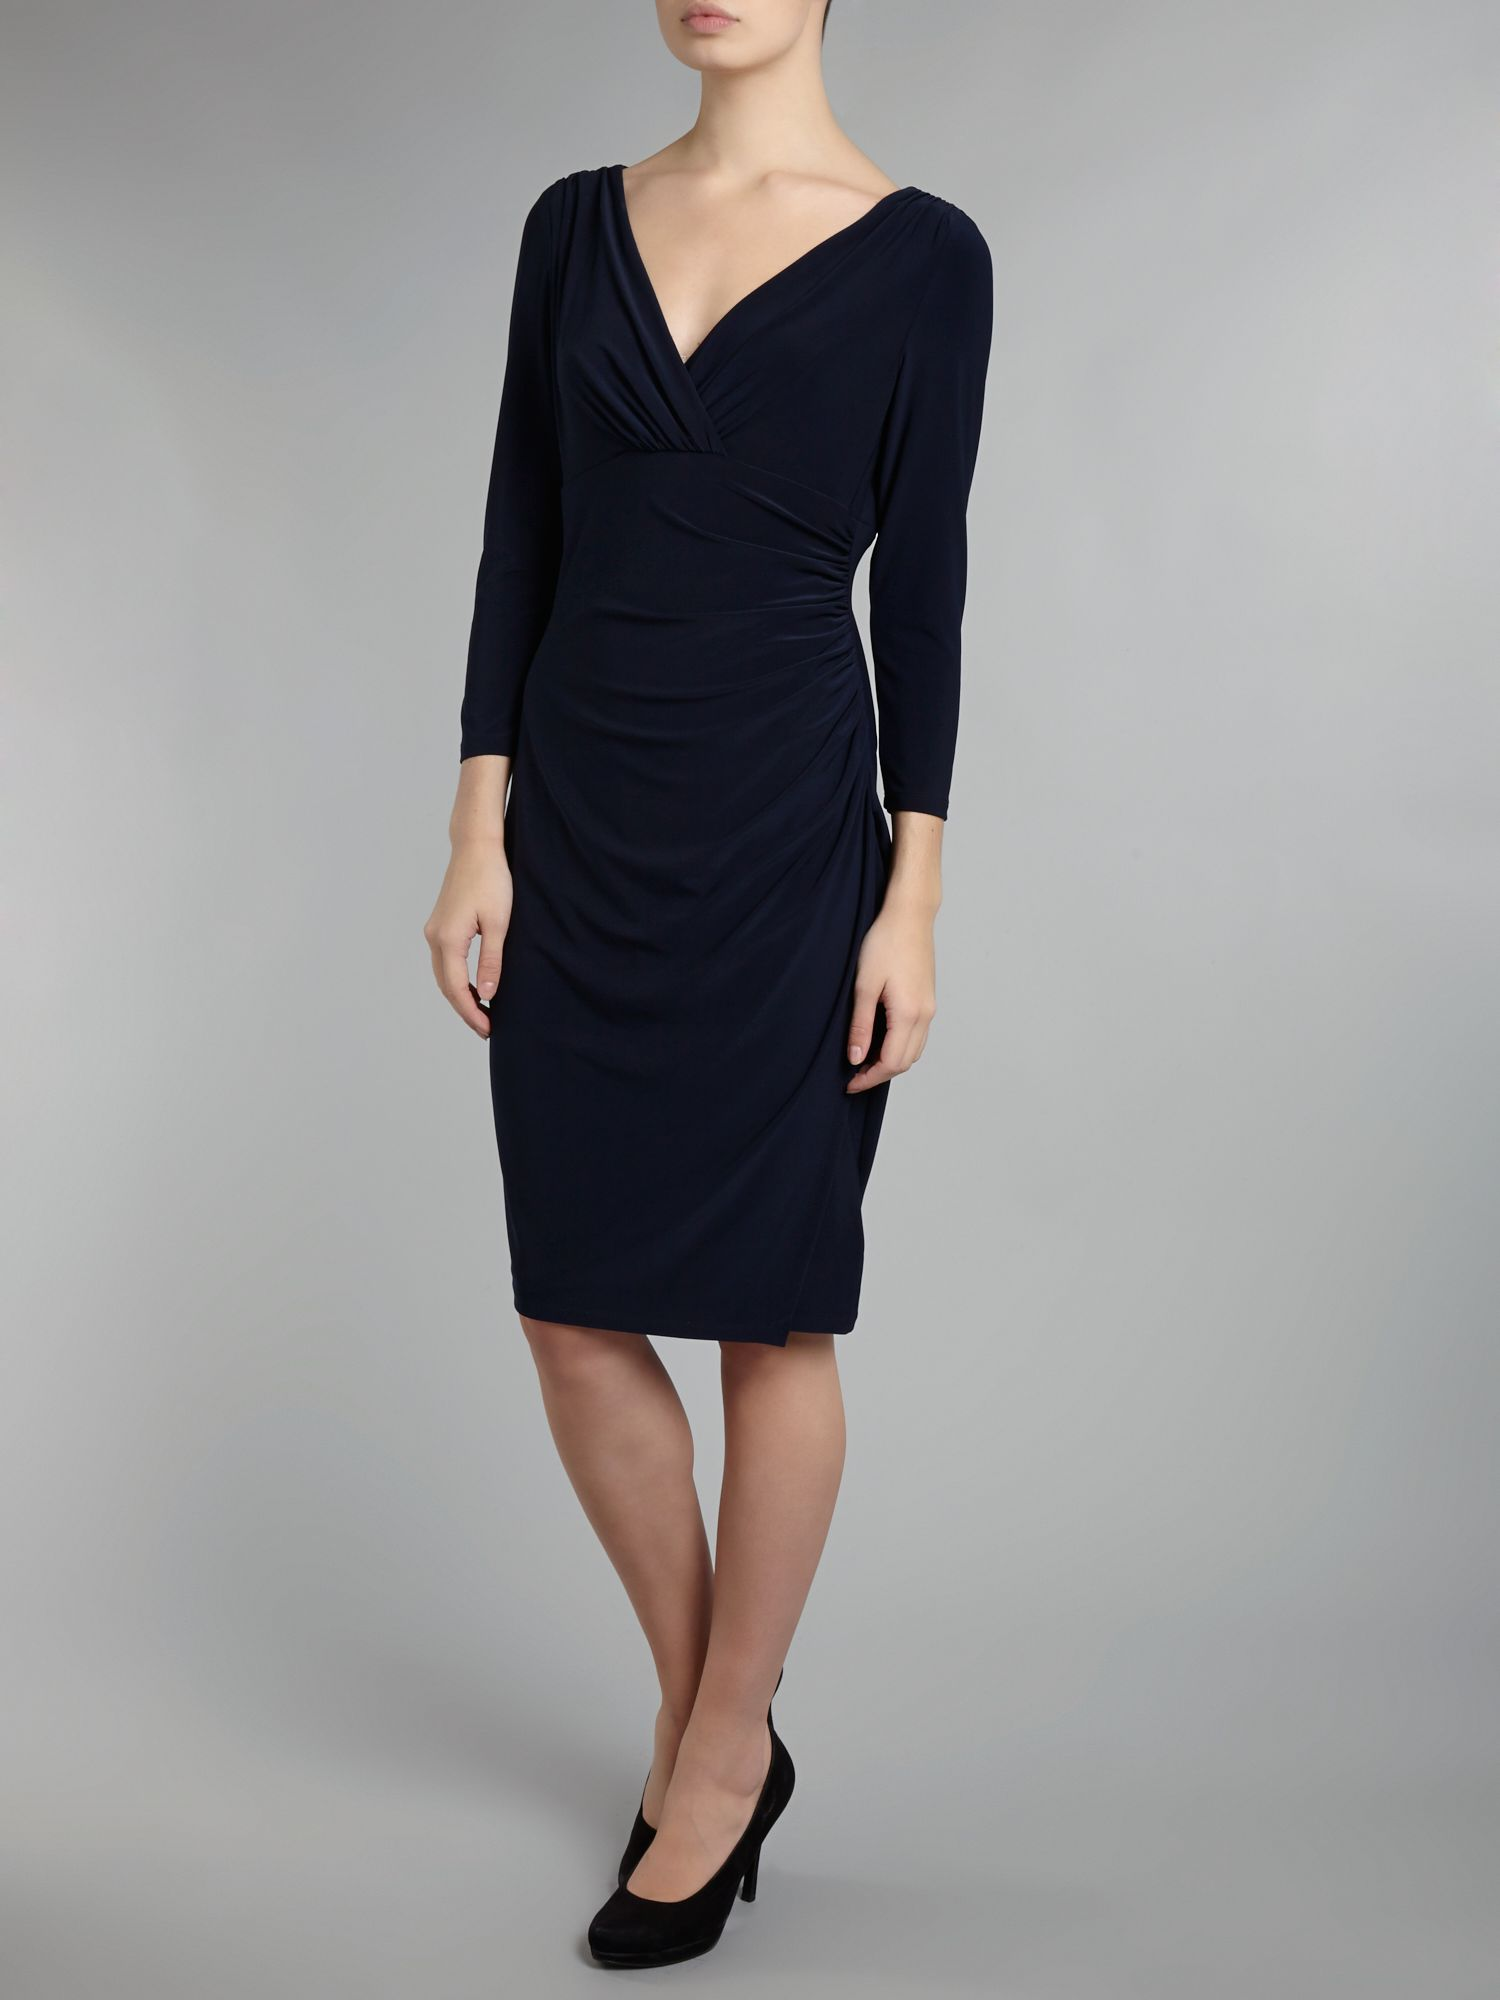 Long sleeve v neck jersey dress